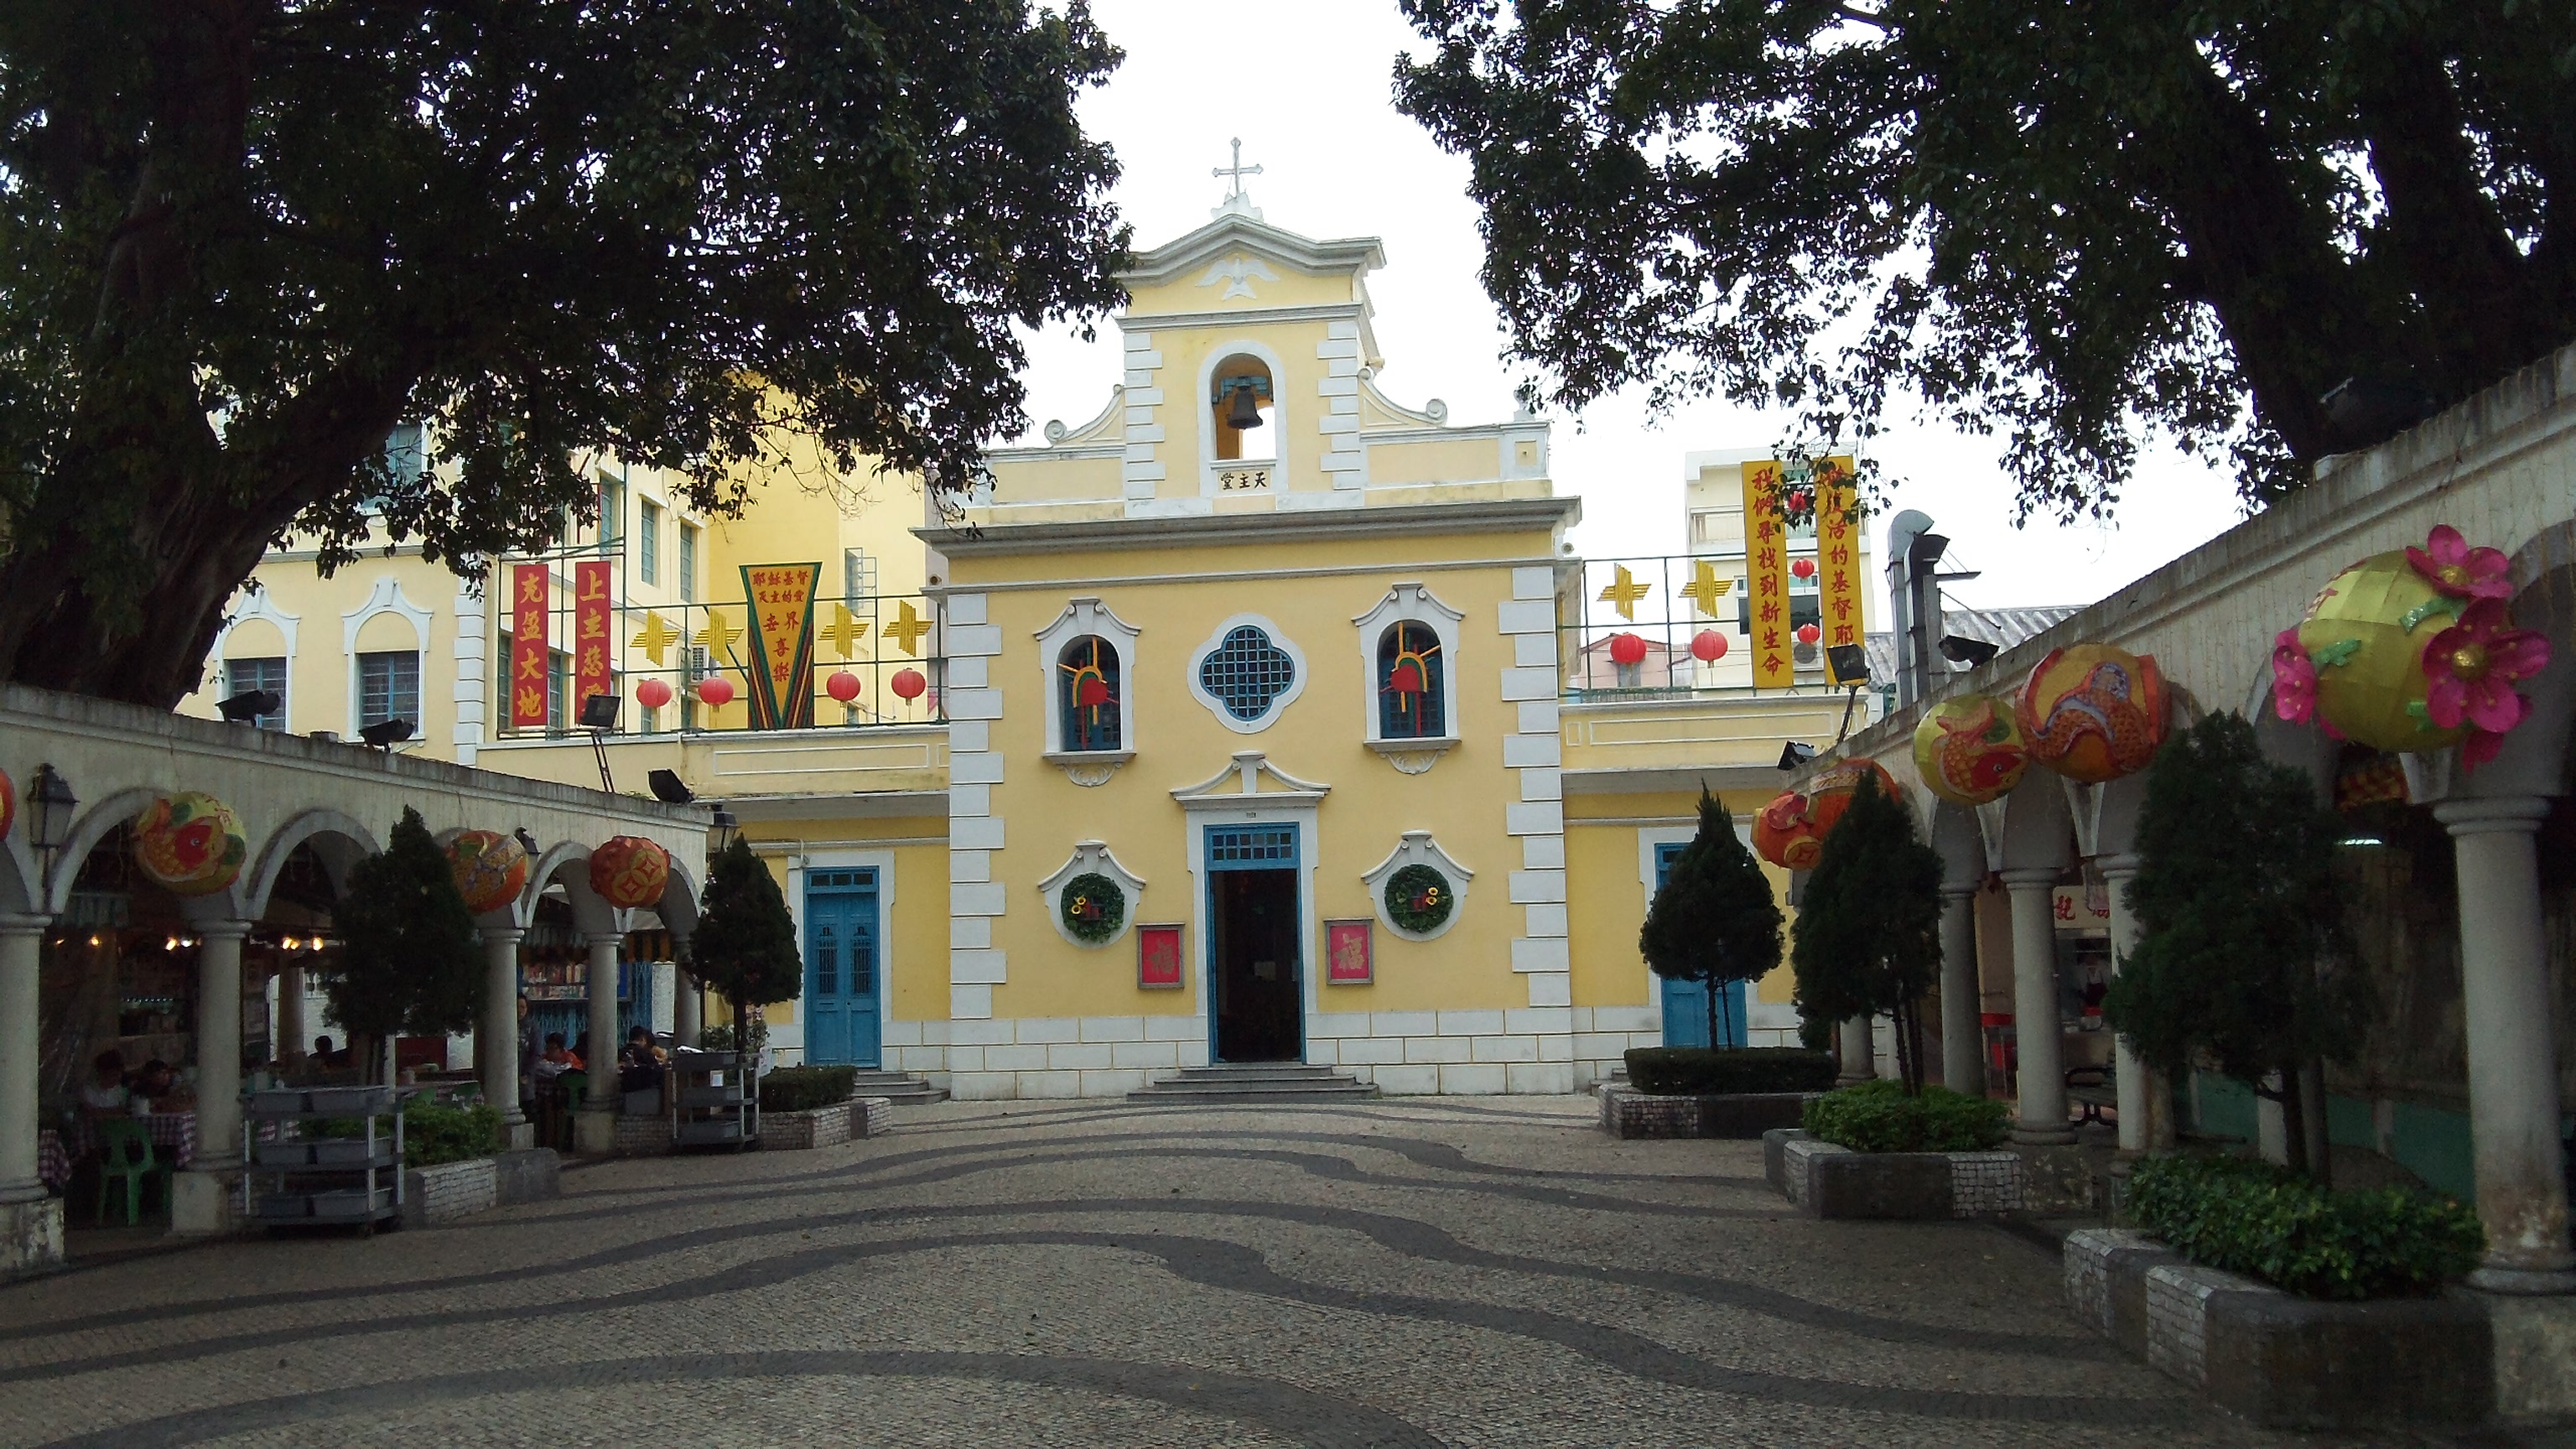 Coloane Church, Macau